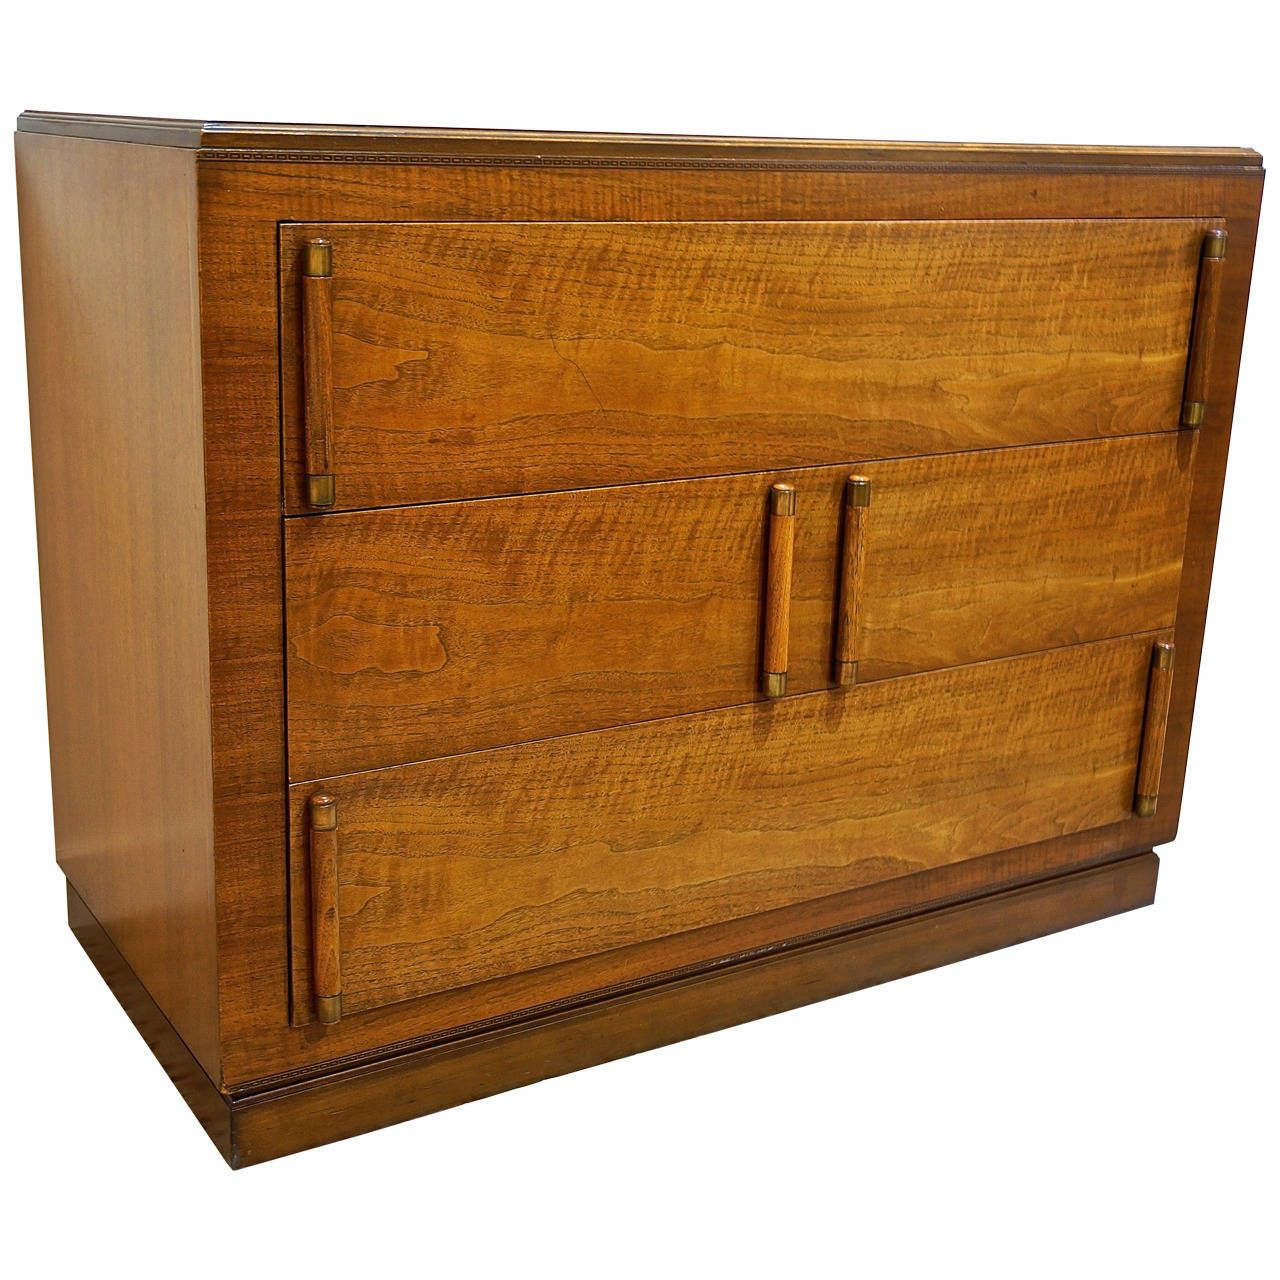 First floor powder vanity inspiration- eliminate 3rd drawer for hollow space  American Art Deco Mahogany Chest of Drawers | From a unique collection of antique and modern dressers at https://www.1stdibs.com/furniture/storage-case-pieces/dressers/